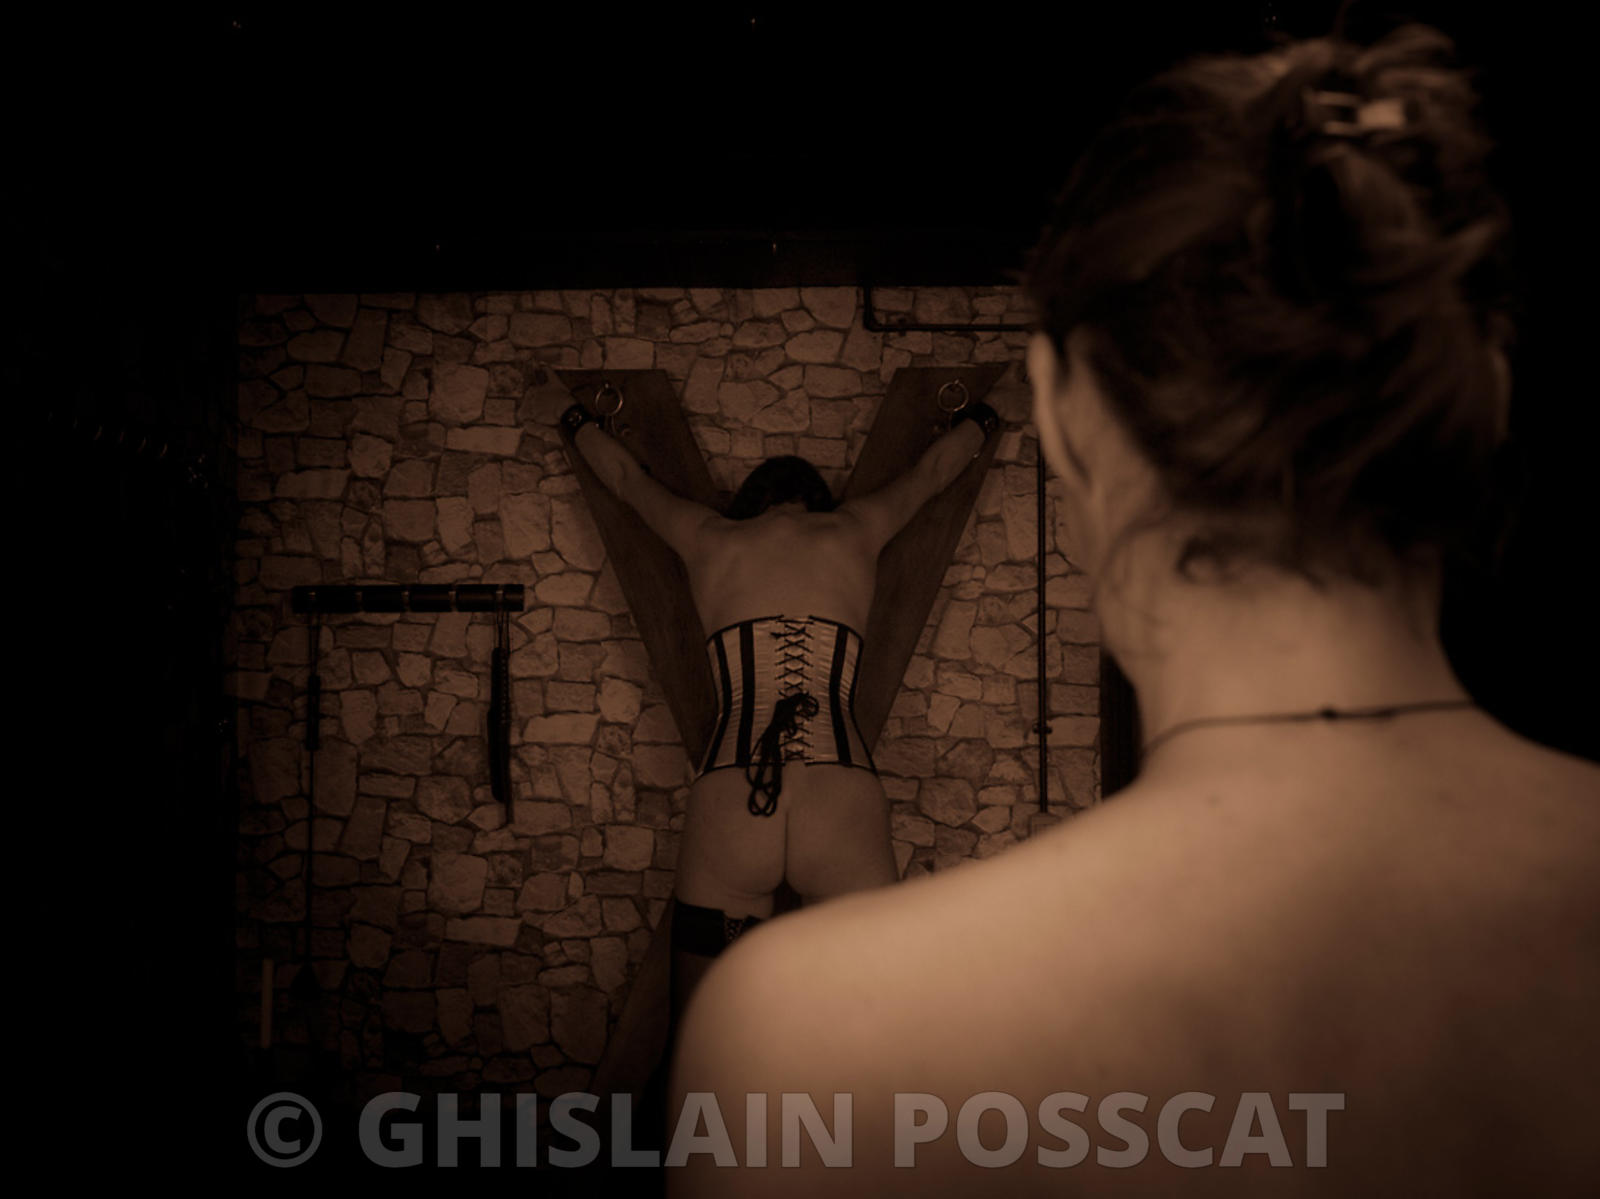 bdsm pictures, bdsm photos - bdsm photo - bondage pictures, shibari pictures, fetish photographer, bdsm photographer